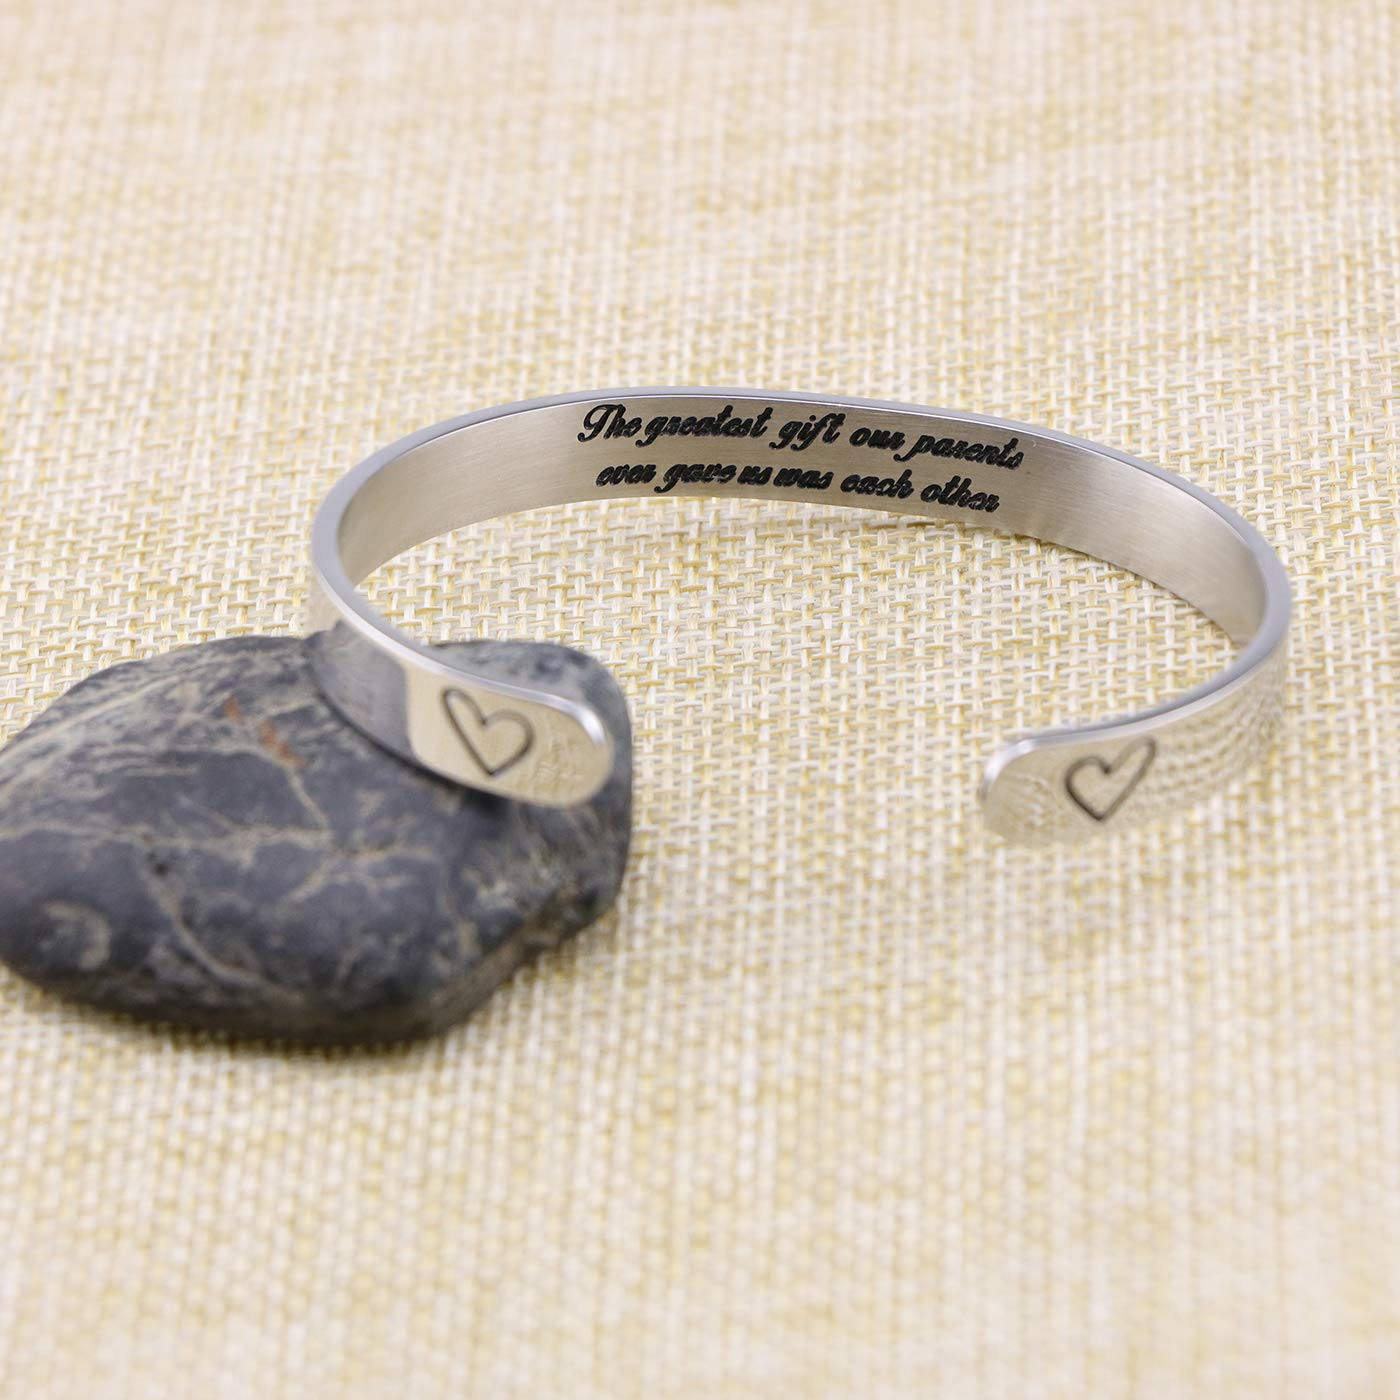 Brother Sister Gift for Mom Bracelet Mothers Day Jewelry Stainless Steel Christmas Relationship Jewelry Bangle Personalized Present